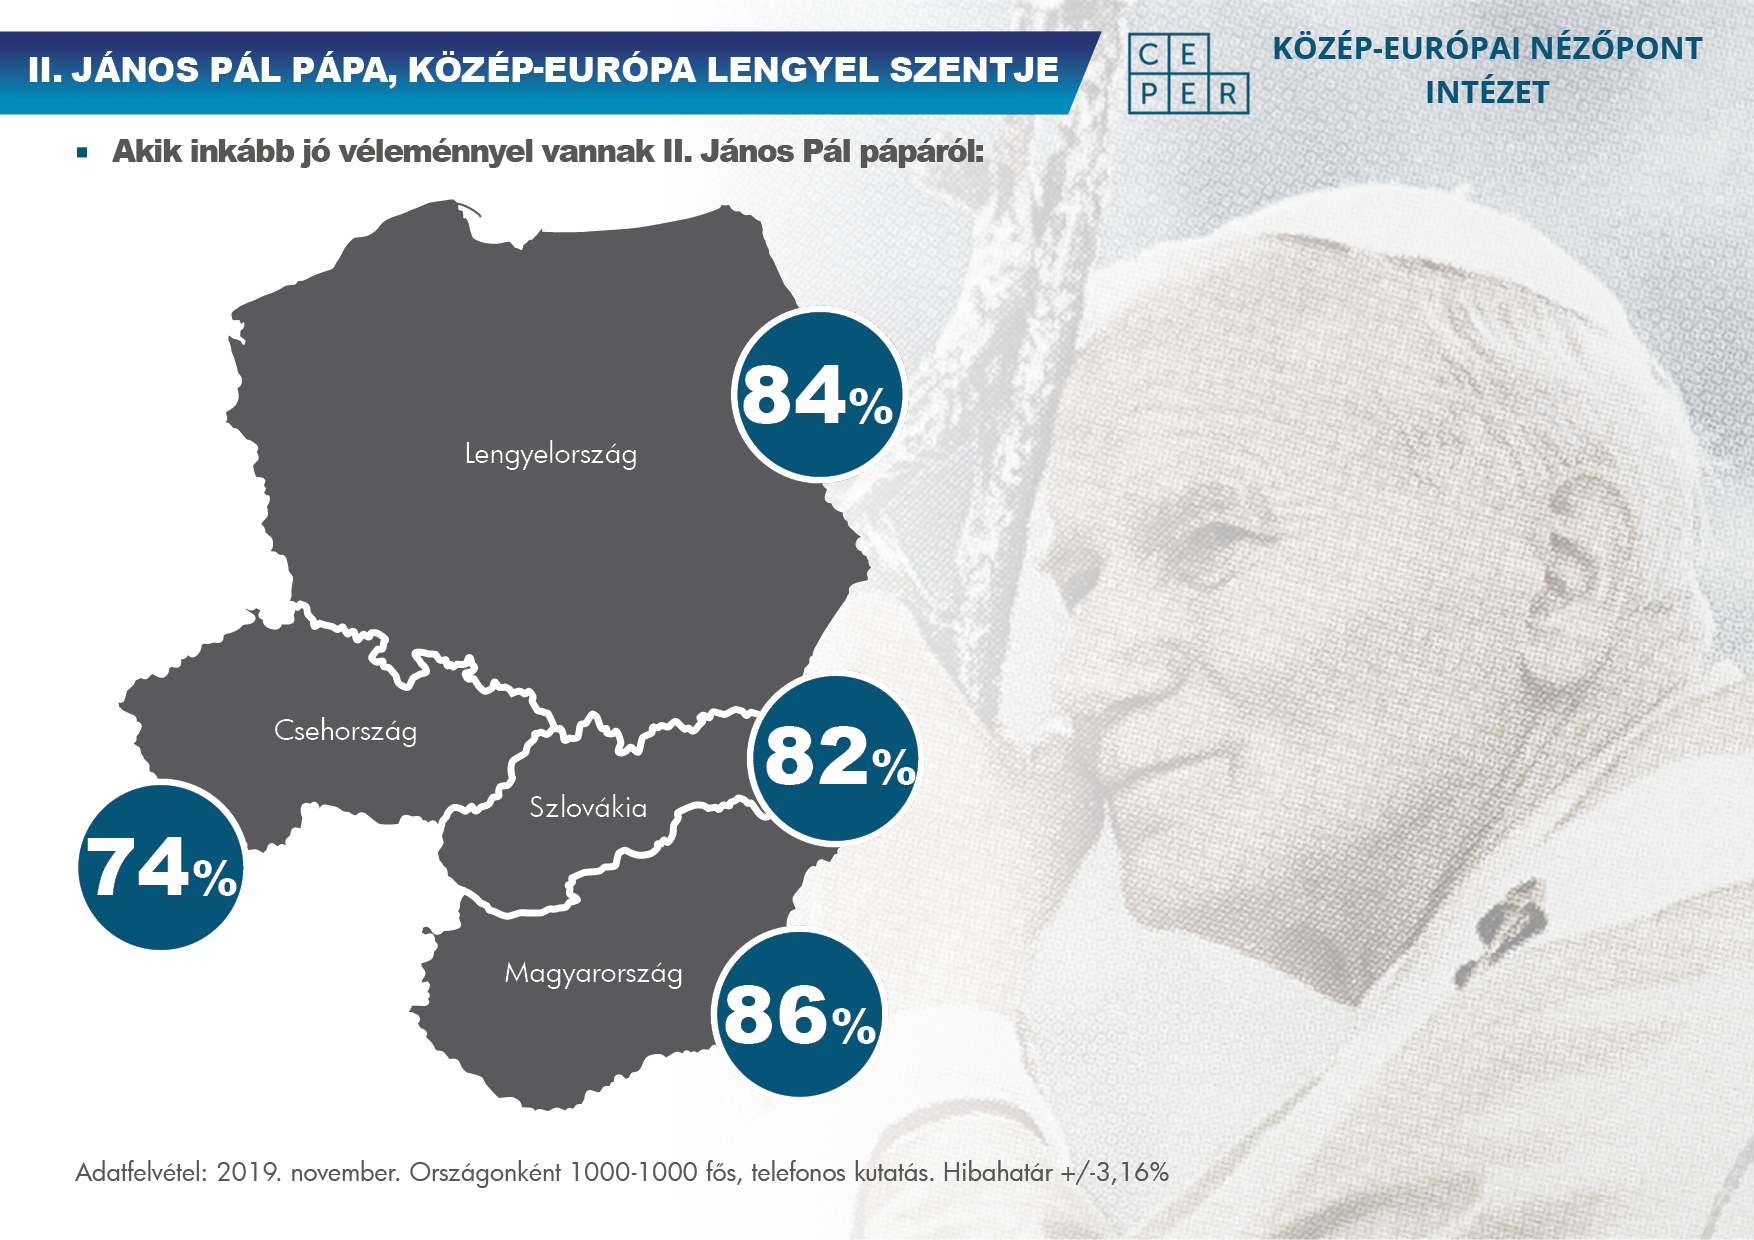 INSTITUTE OF CENTRAL EUROPEAN PERSPECTIVES SURVEY:  POPE ST JOHN PAUL II, CENTRAL EUROPE'S POLISH SAINT